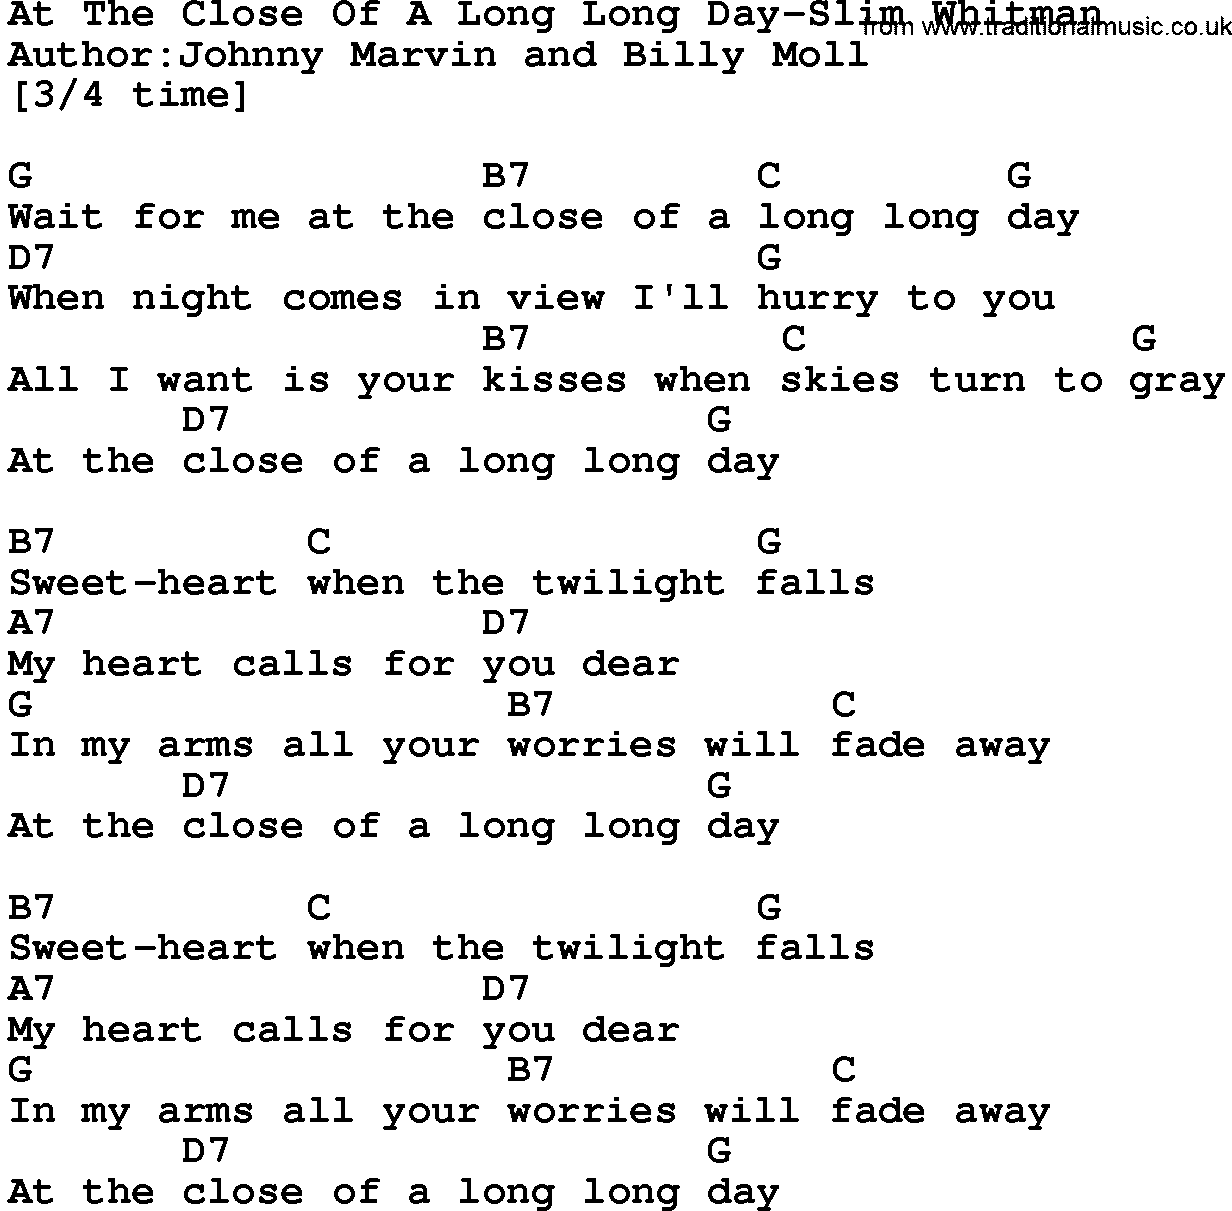 Country musicat the close of a long long day slim whitman lyrics country musicat the close of a long long day slim whitman lyrics and chords hexwebz Images